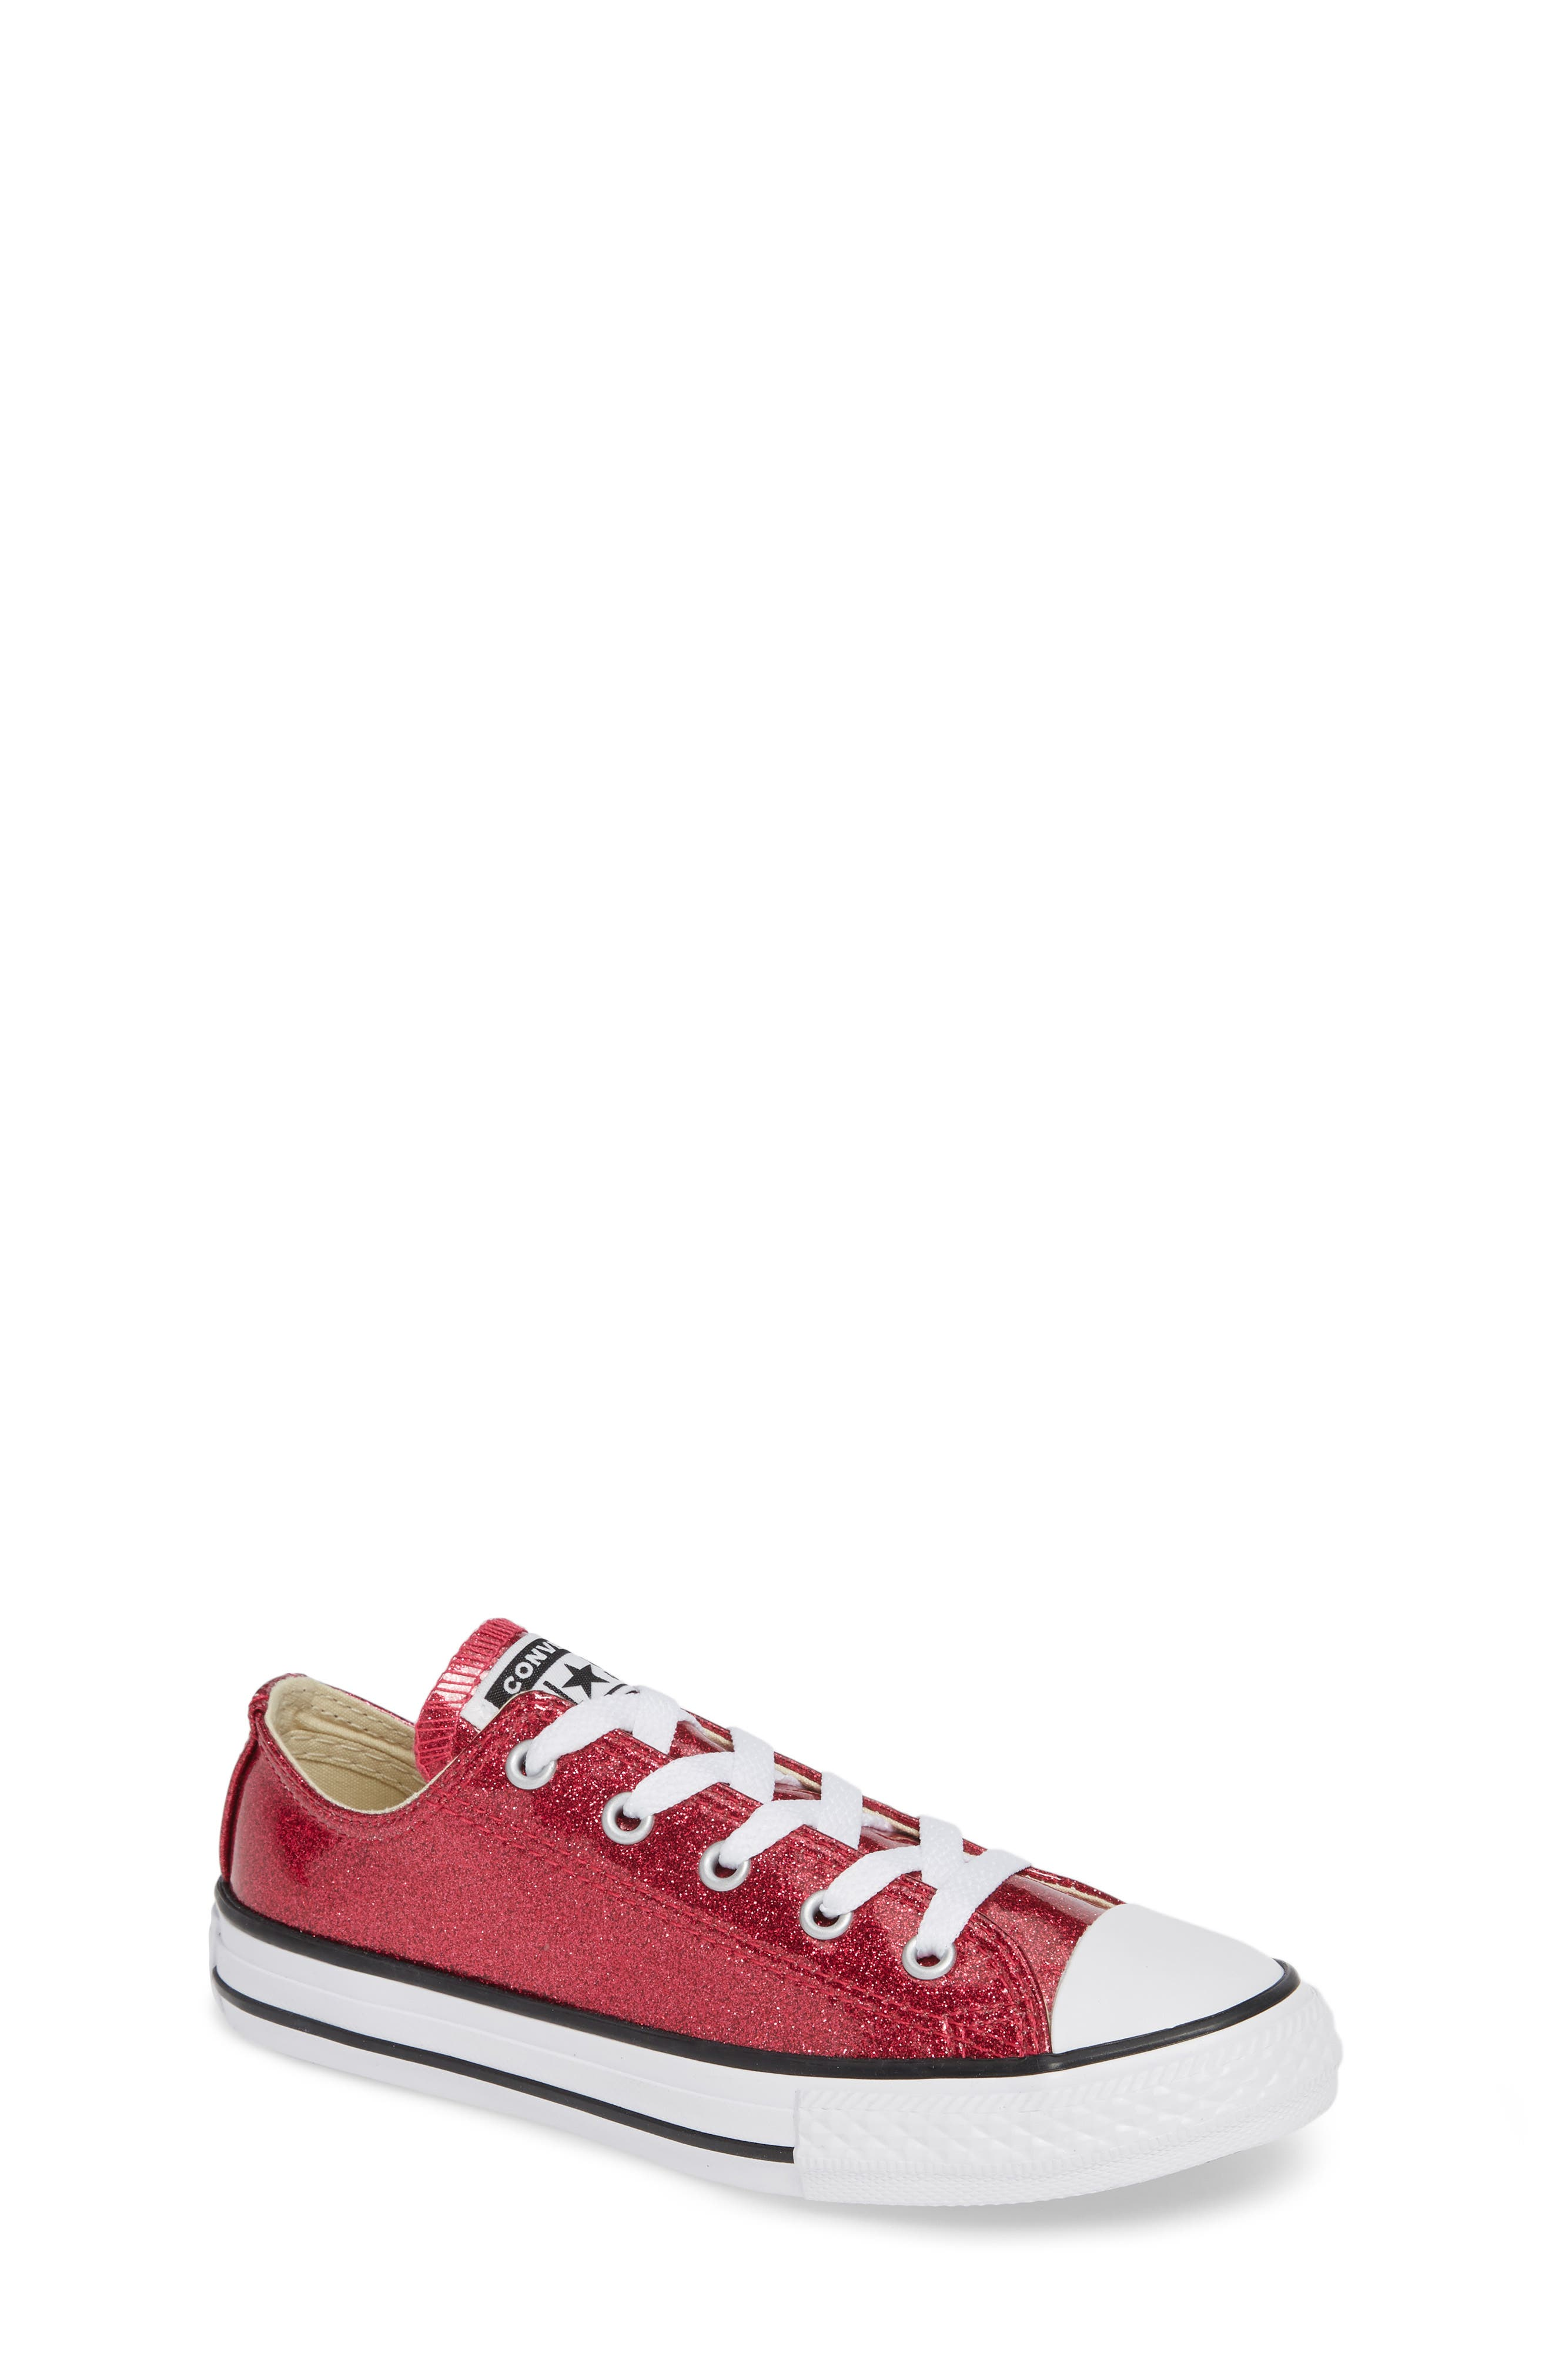 All Star<sup>®</sup> Seasonal Glitter OX Low Top Sneaker,                             Main thumbnail 1, color,                             PINK POP